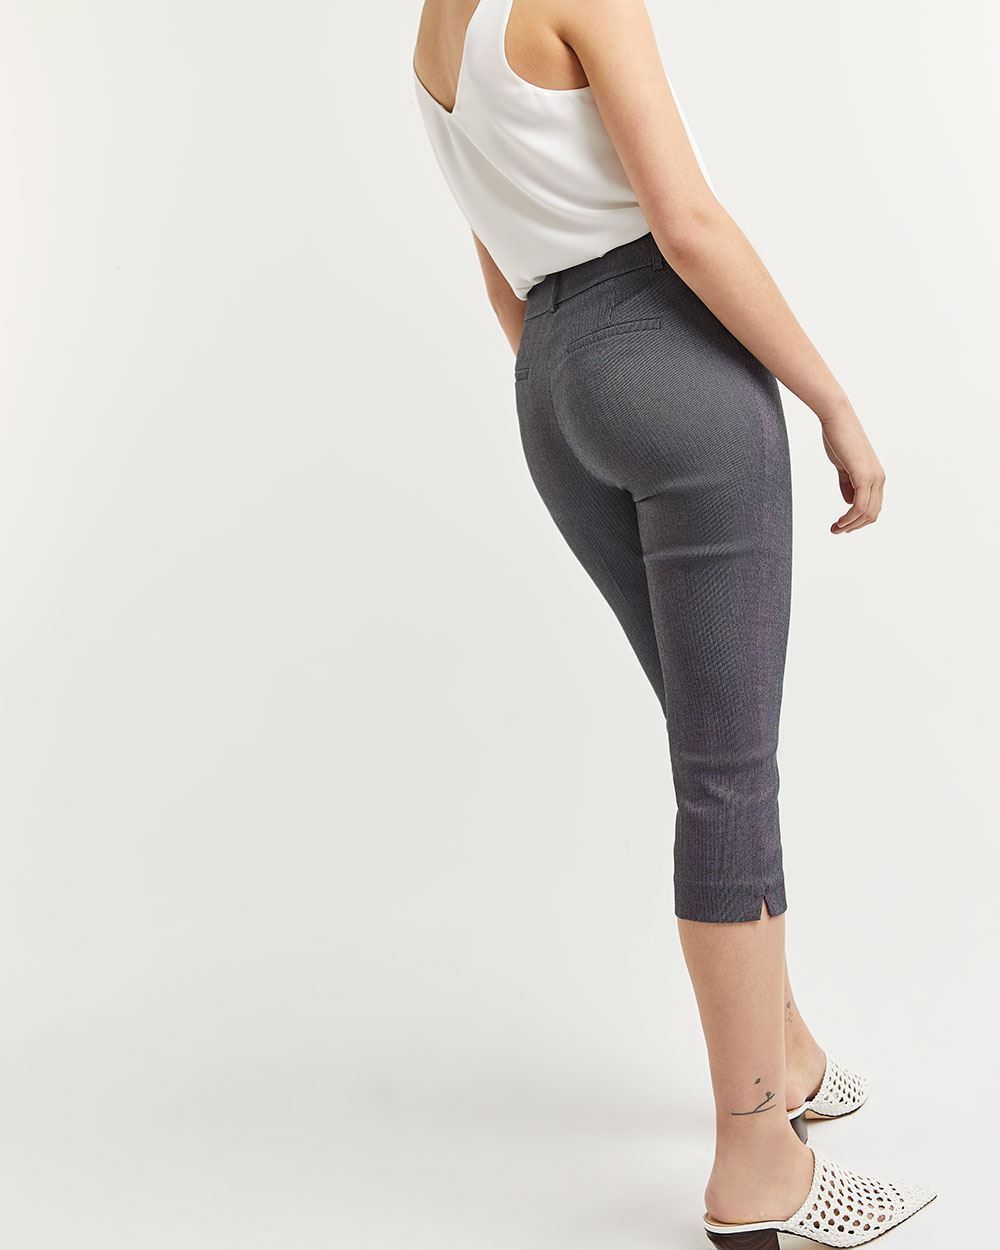 Herringbone Capri Pants The Iconic